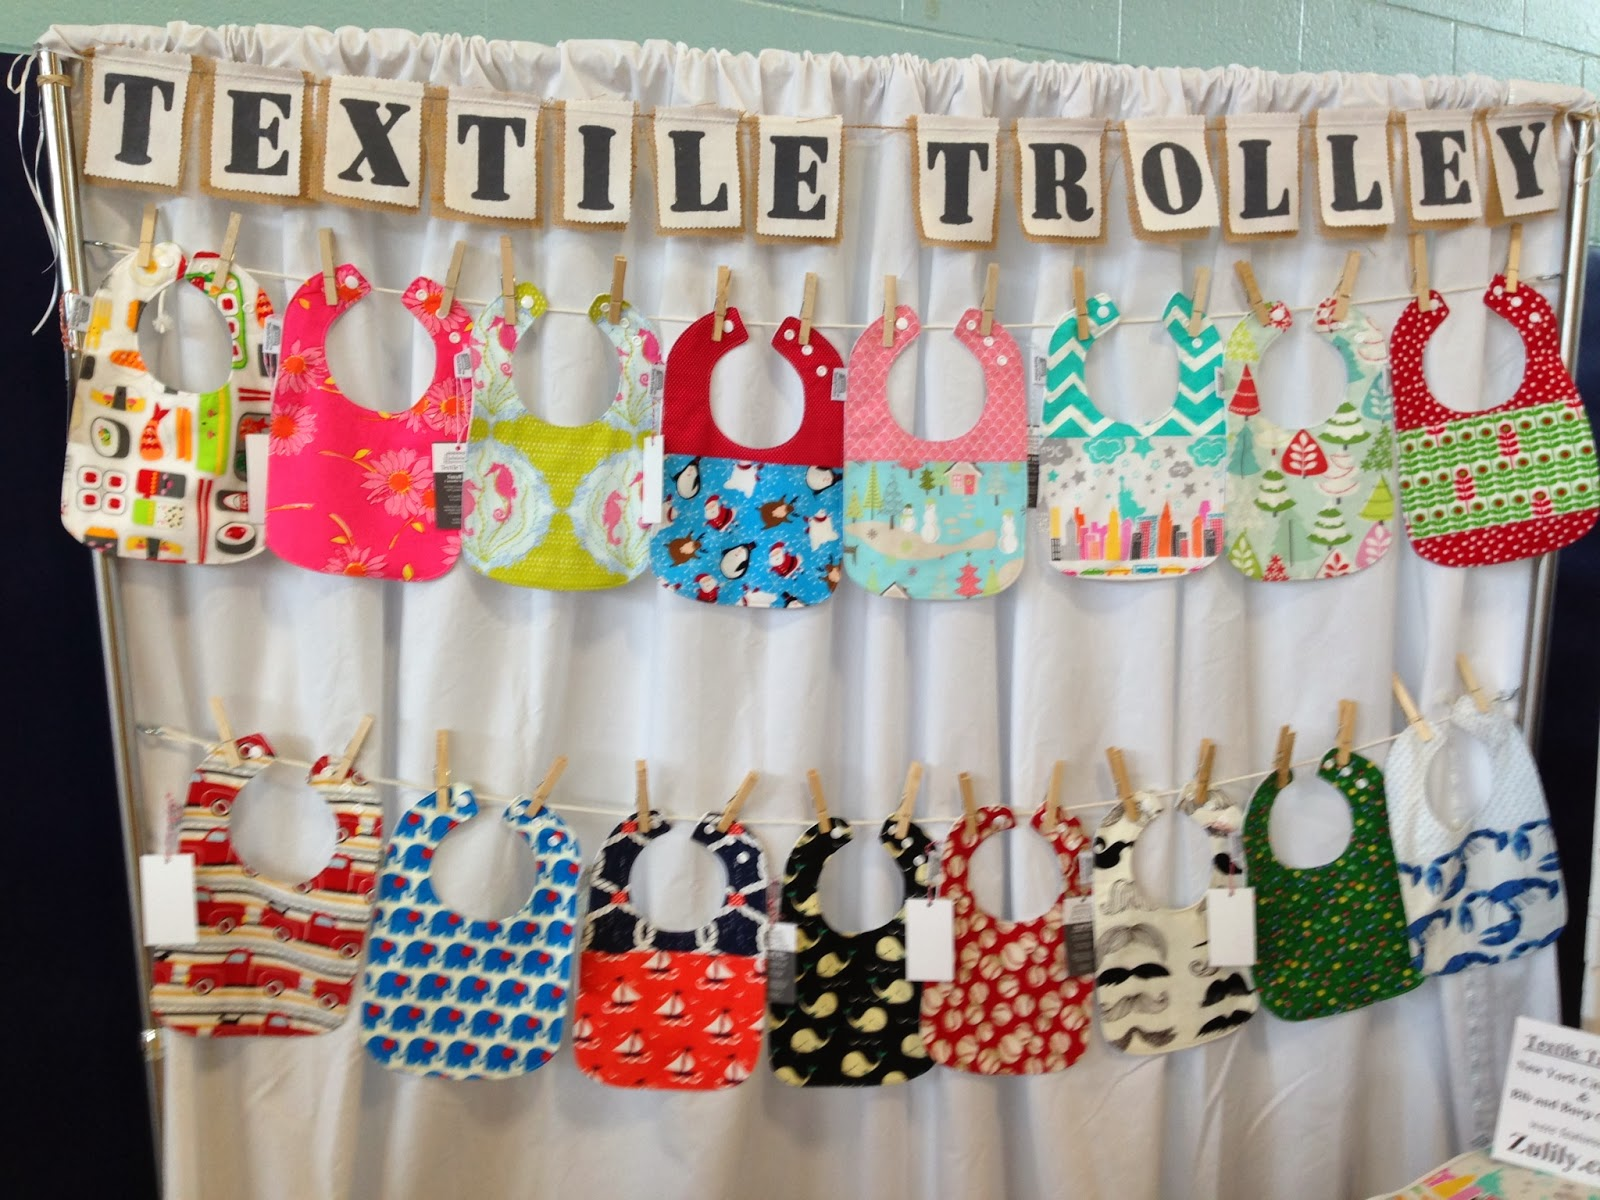 Textile trolley craft show display improvements for Hat display ideas for craft shows